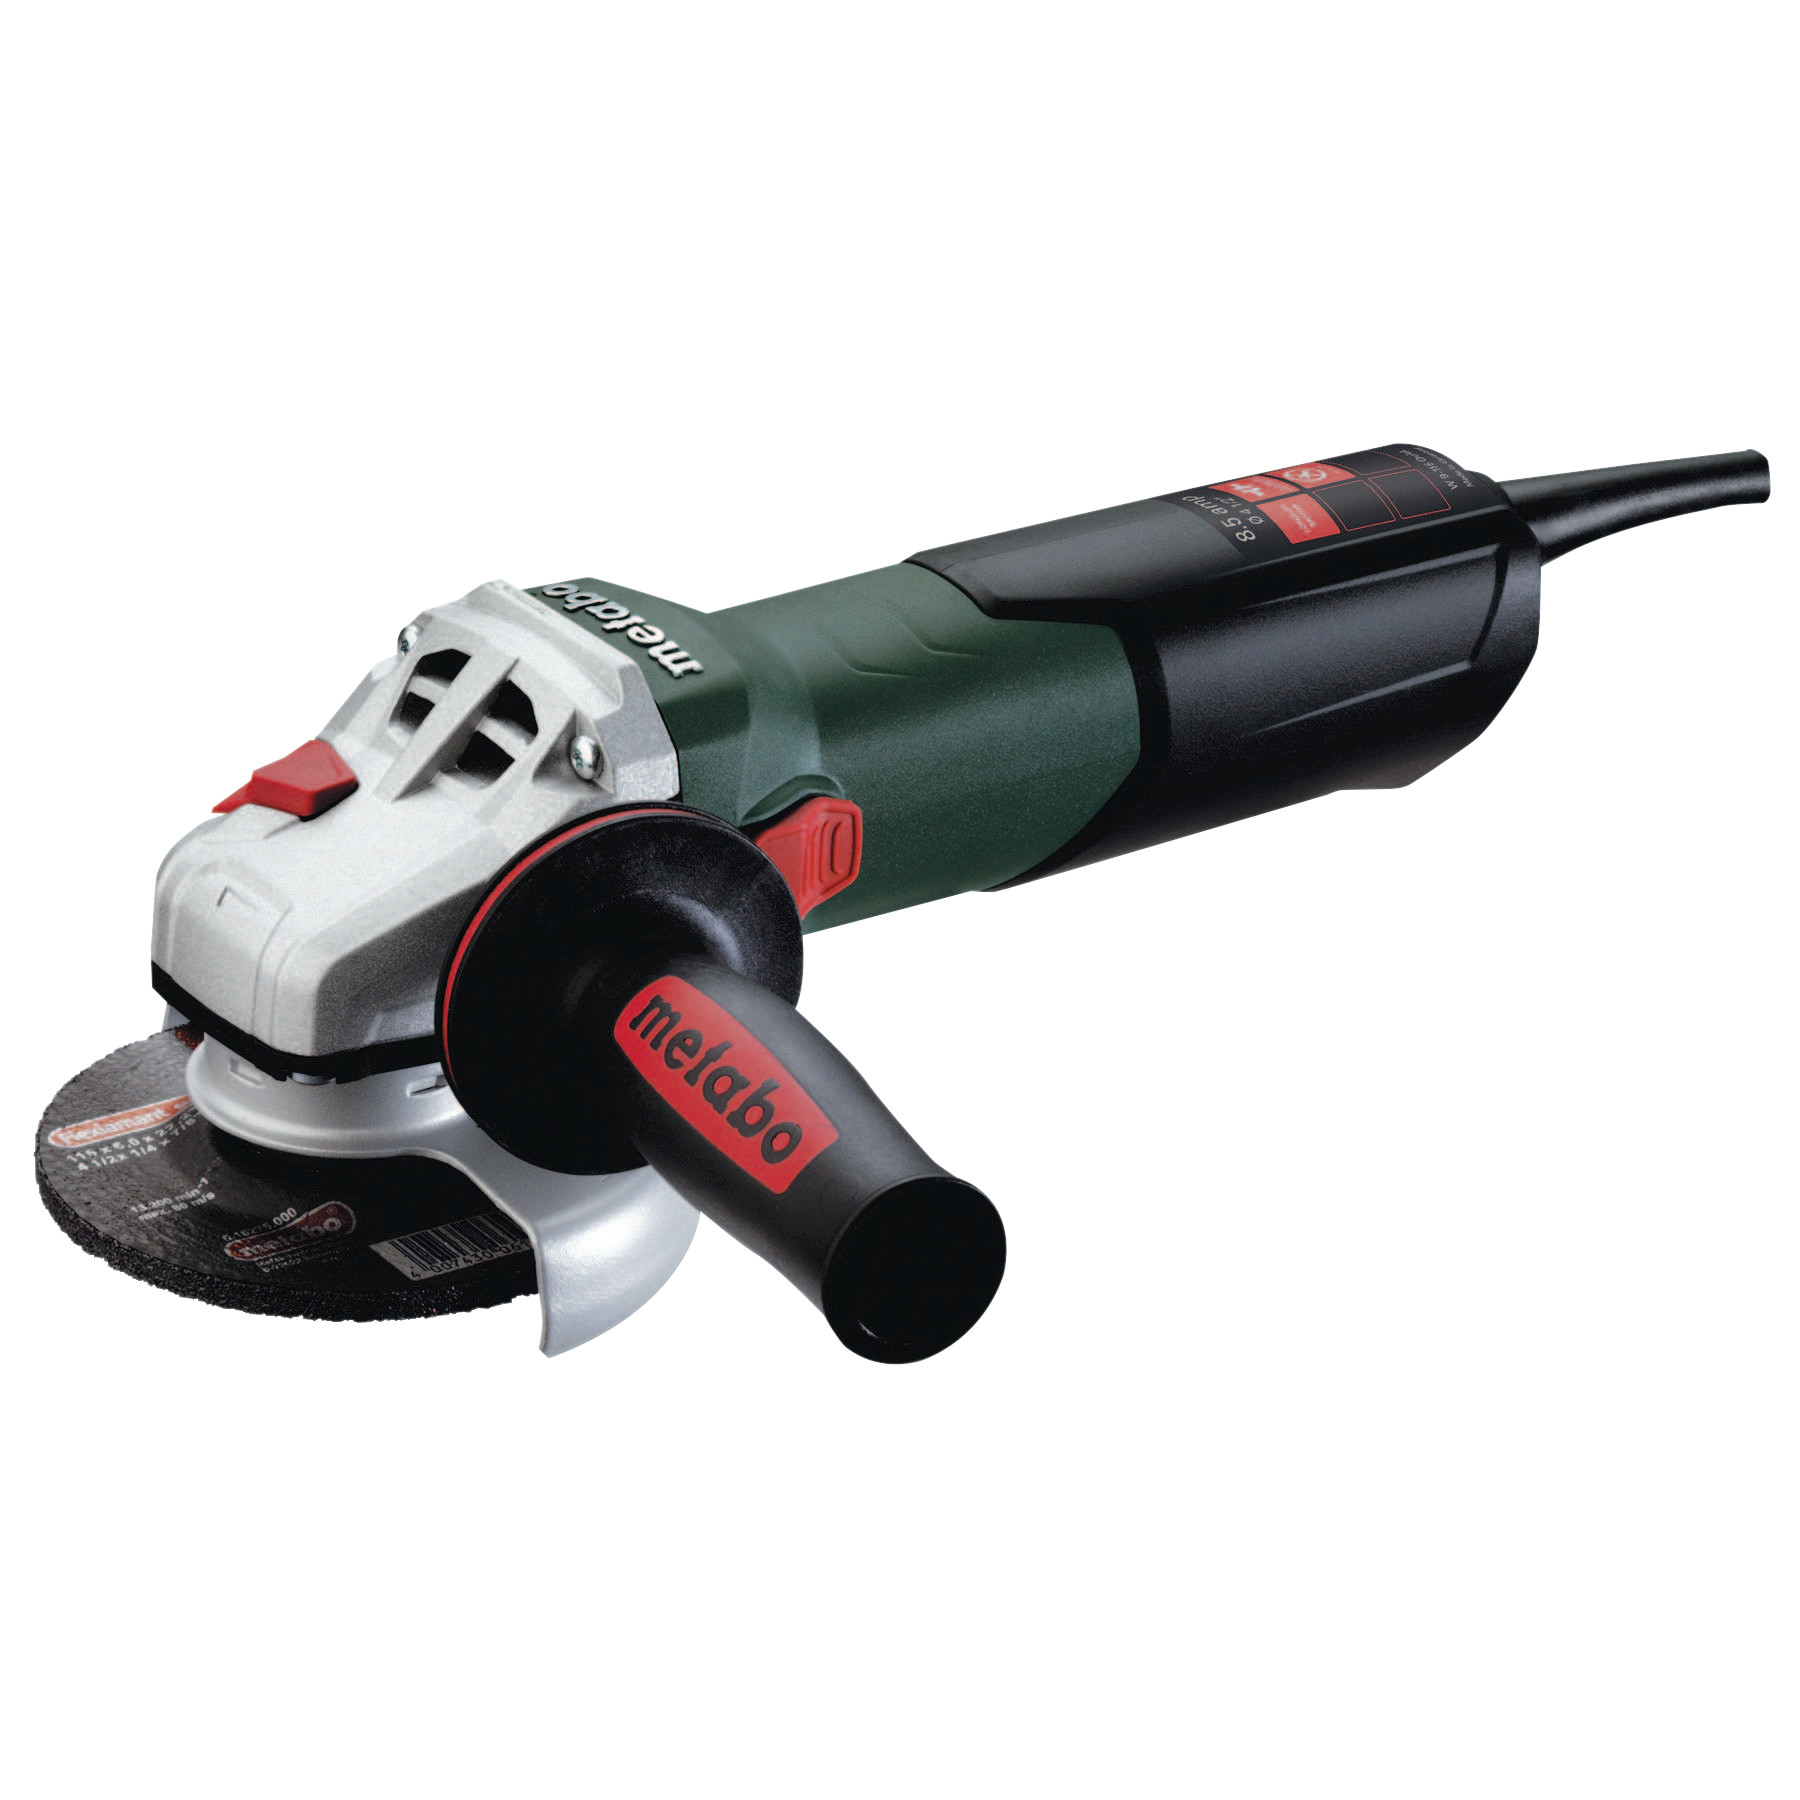 "Metabo 900 Watt 4 1/2"" Angle Grinders, 8.5 A, 10,500 rpm, Sliding Switch w/Lock"